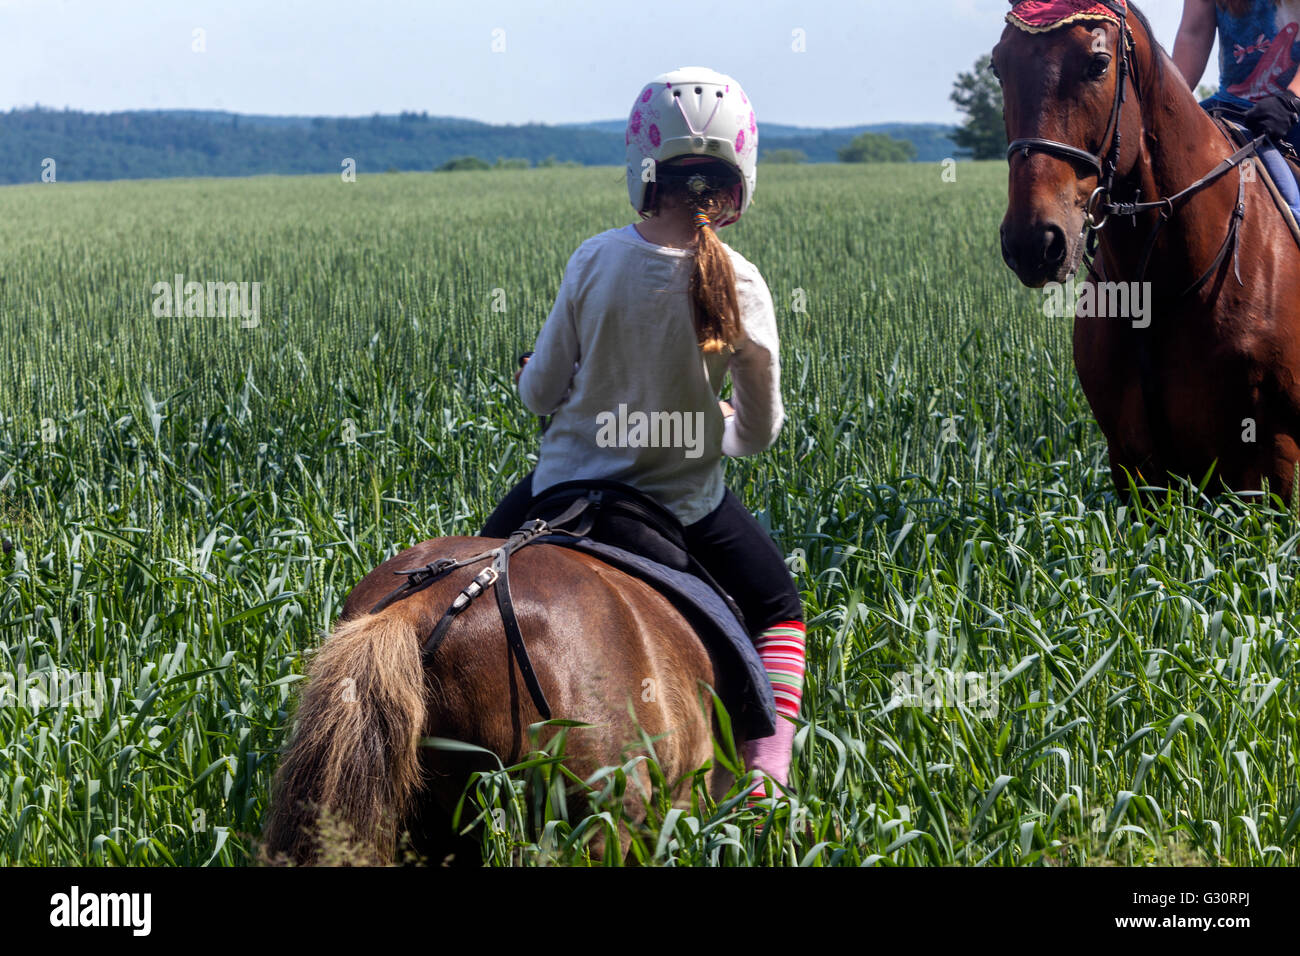 Horseback riding summer landscape Young girls with horses on a meadow - Stock Image